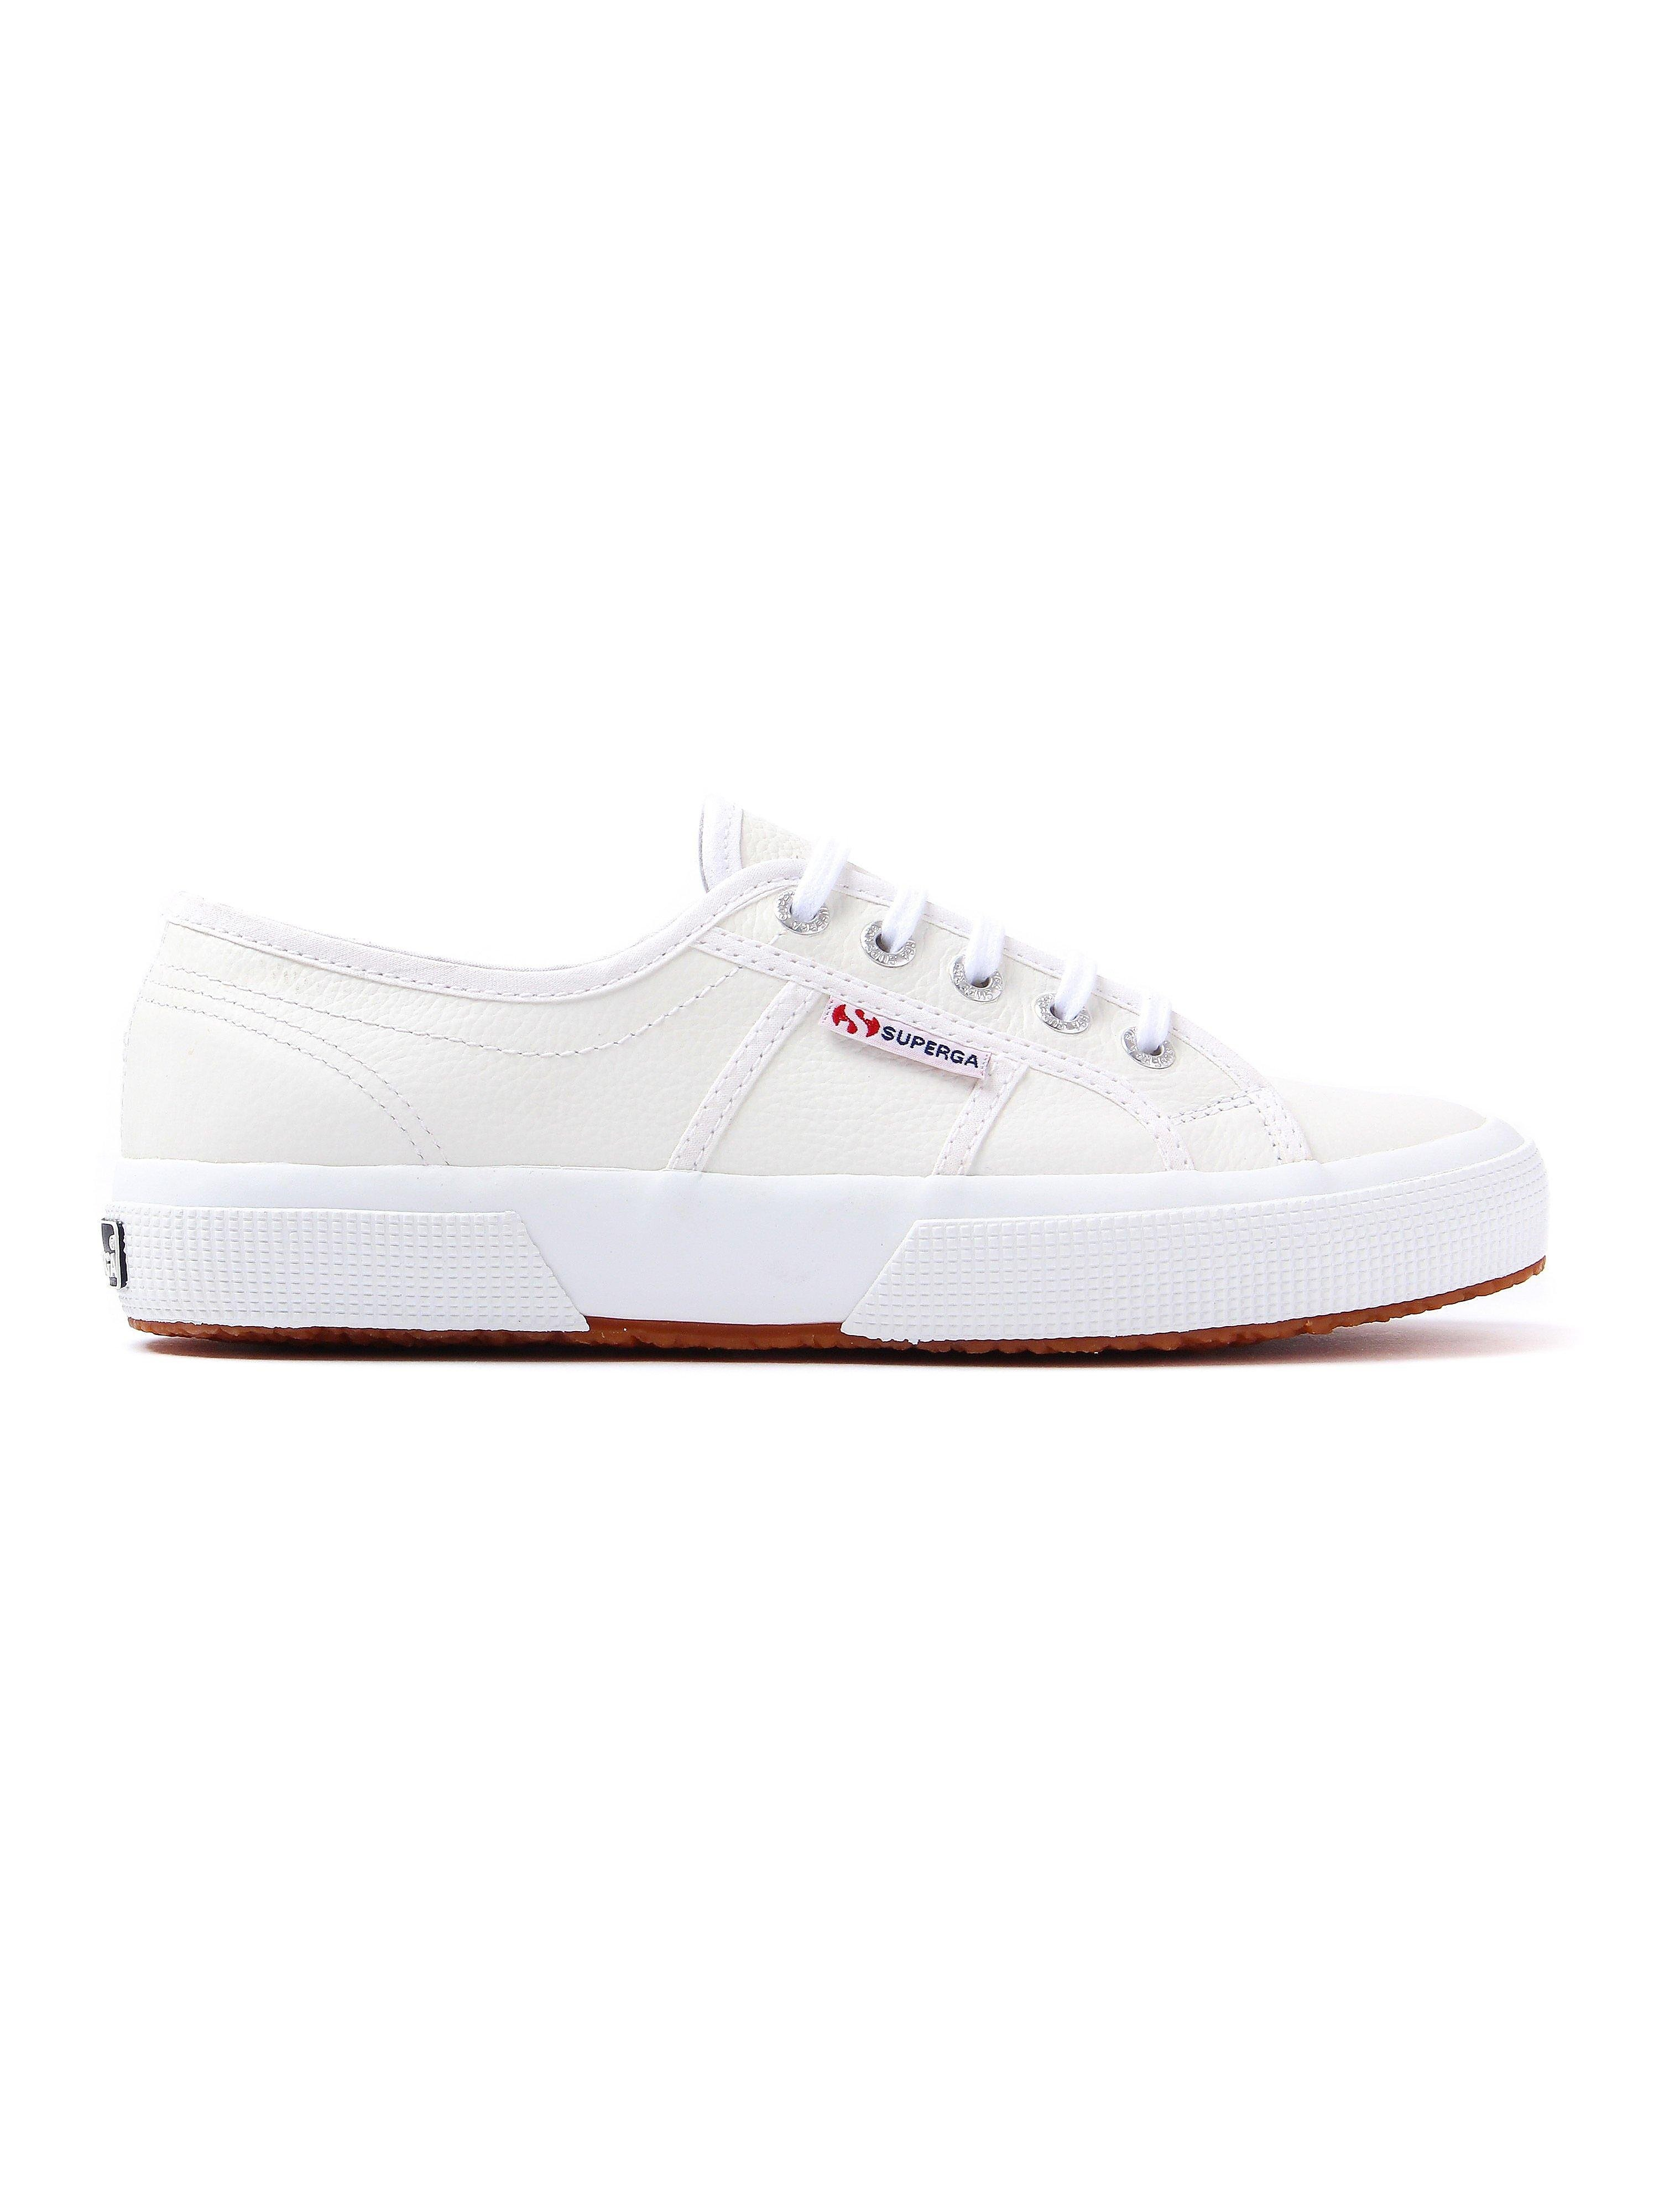 Superga Womens 2750 EFGLU Trainers - White Leather